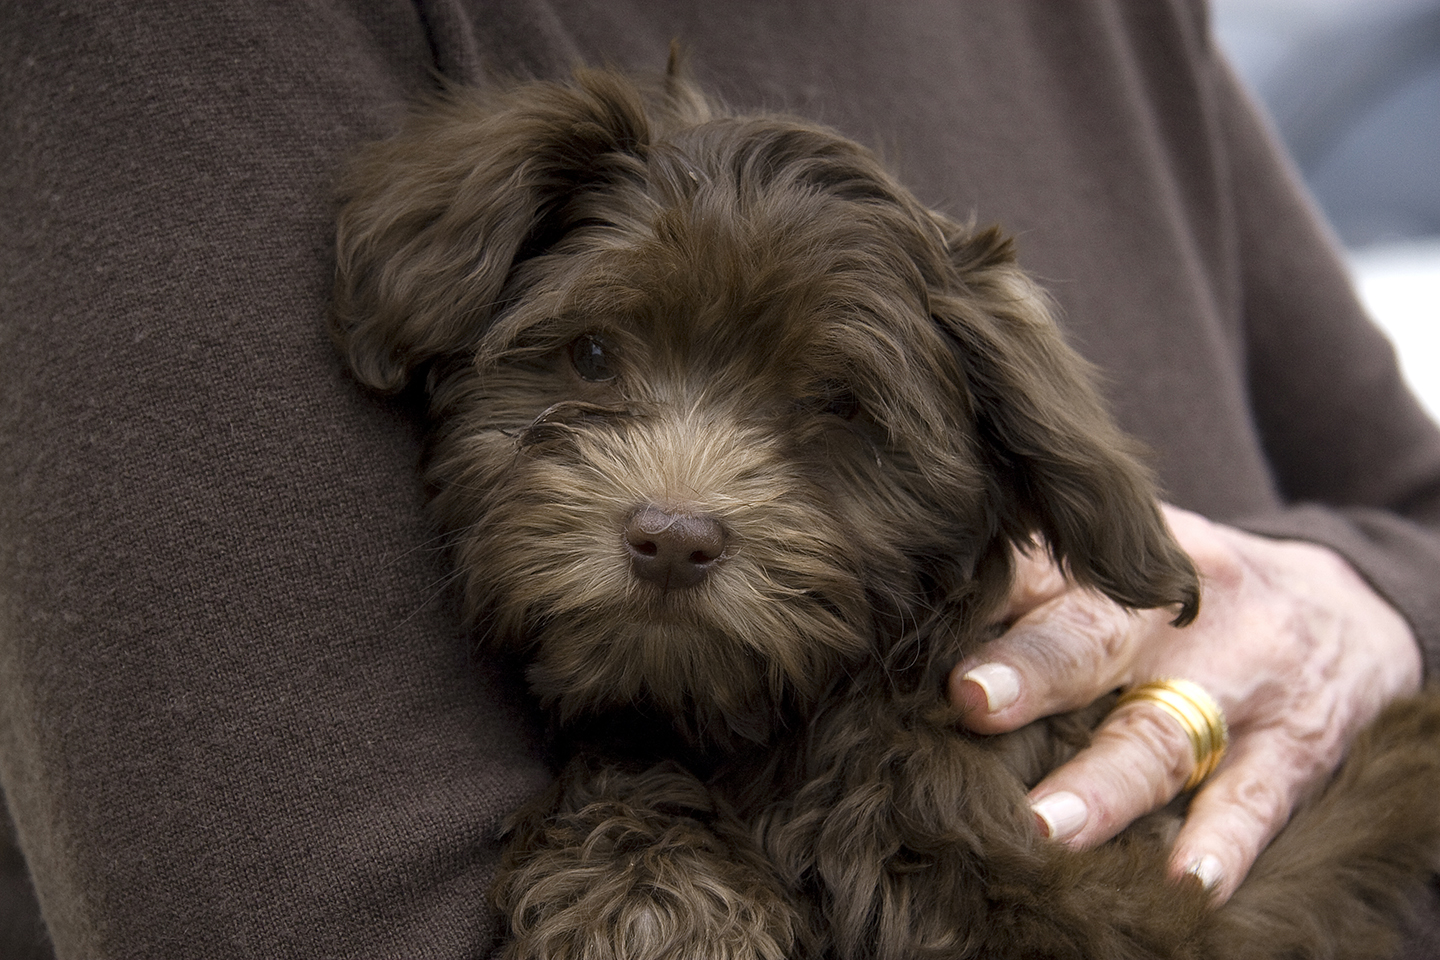 Havana Silk Dogs Havanese - CHOCOLATE SILK HAVANESERare, unusual ...